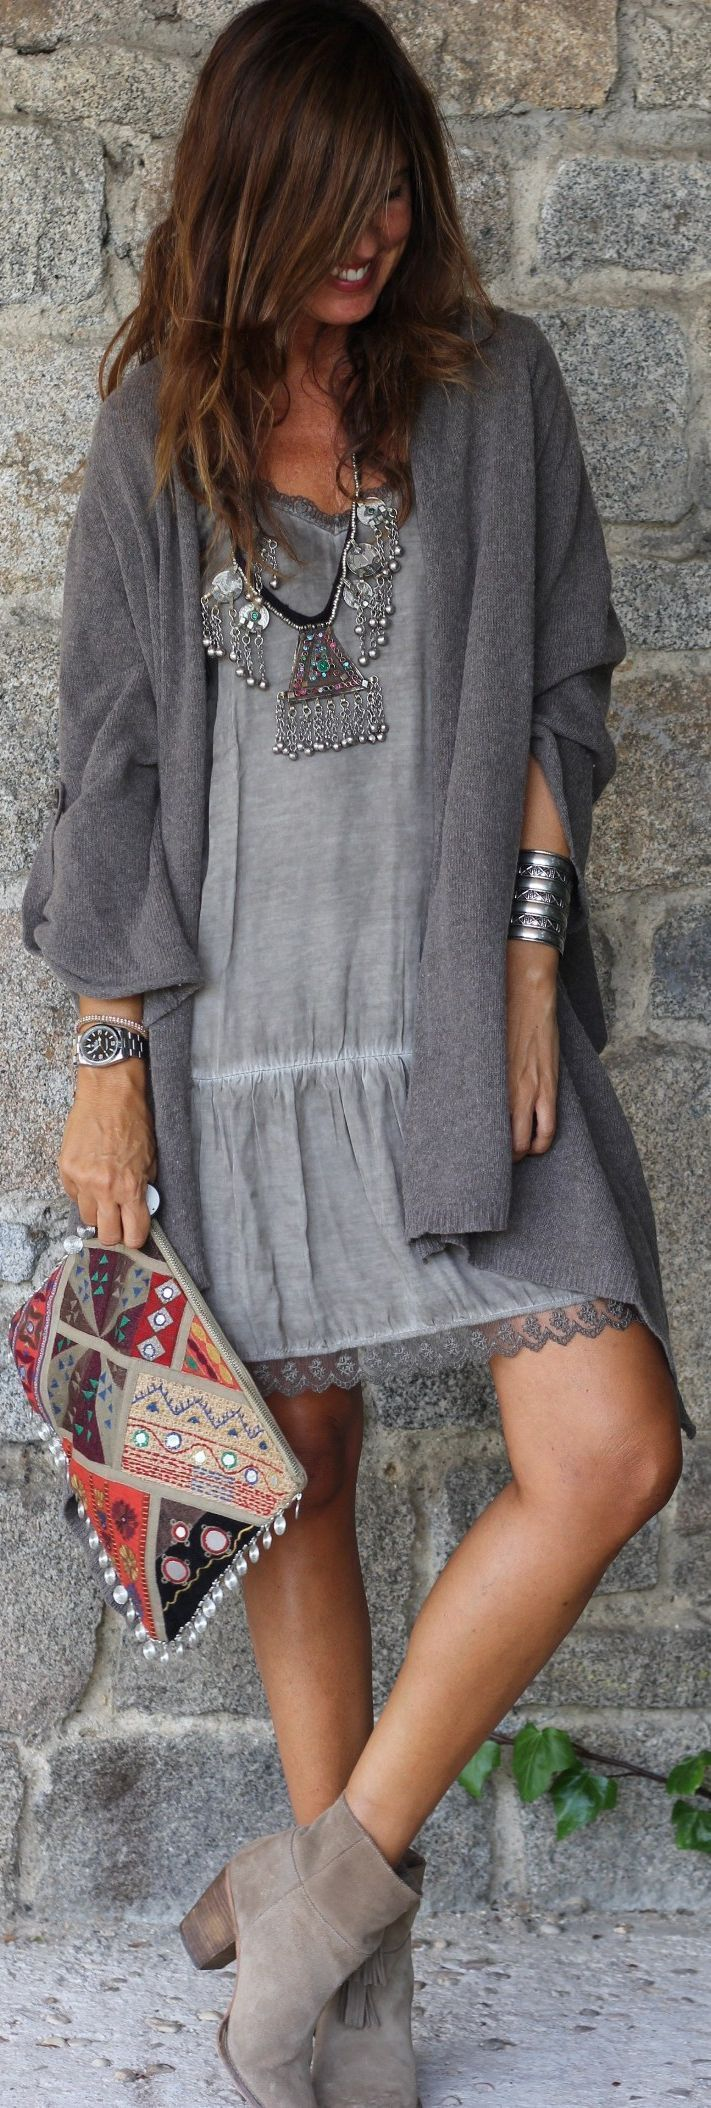 Cute ~Dress Cardigan and Shoes in Grey:)